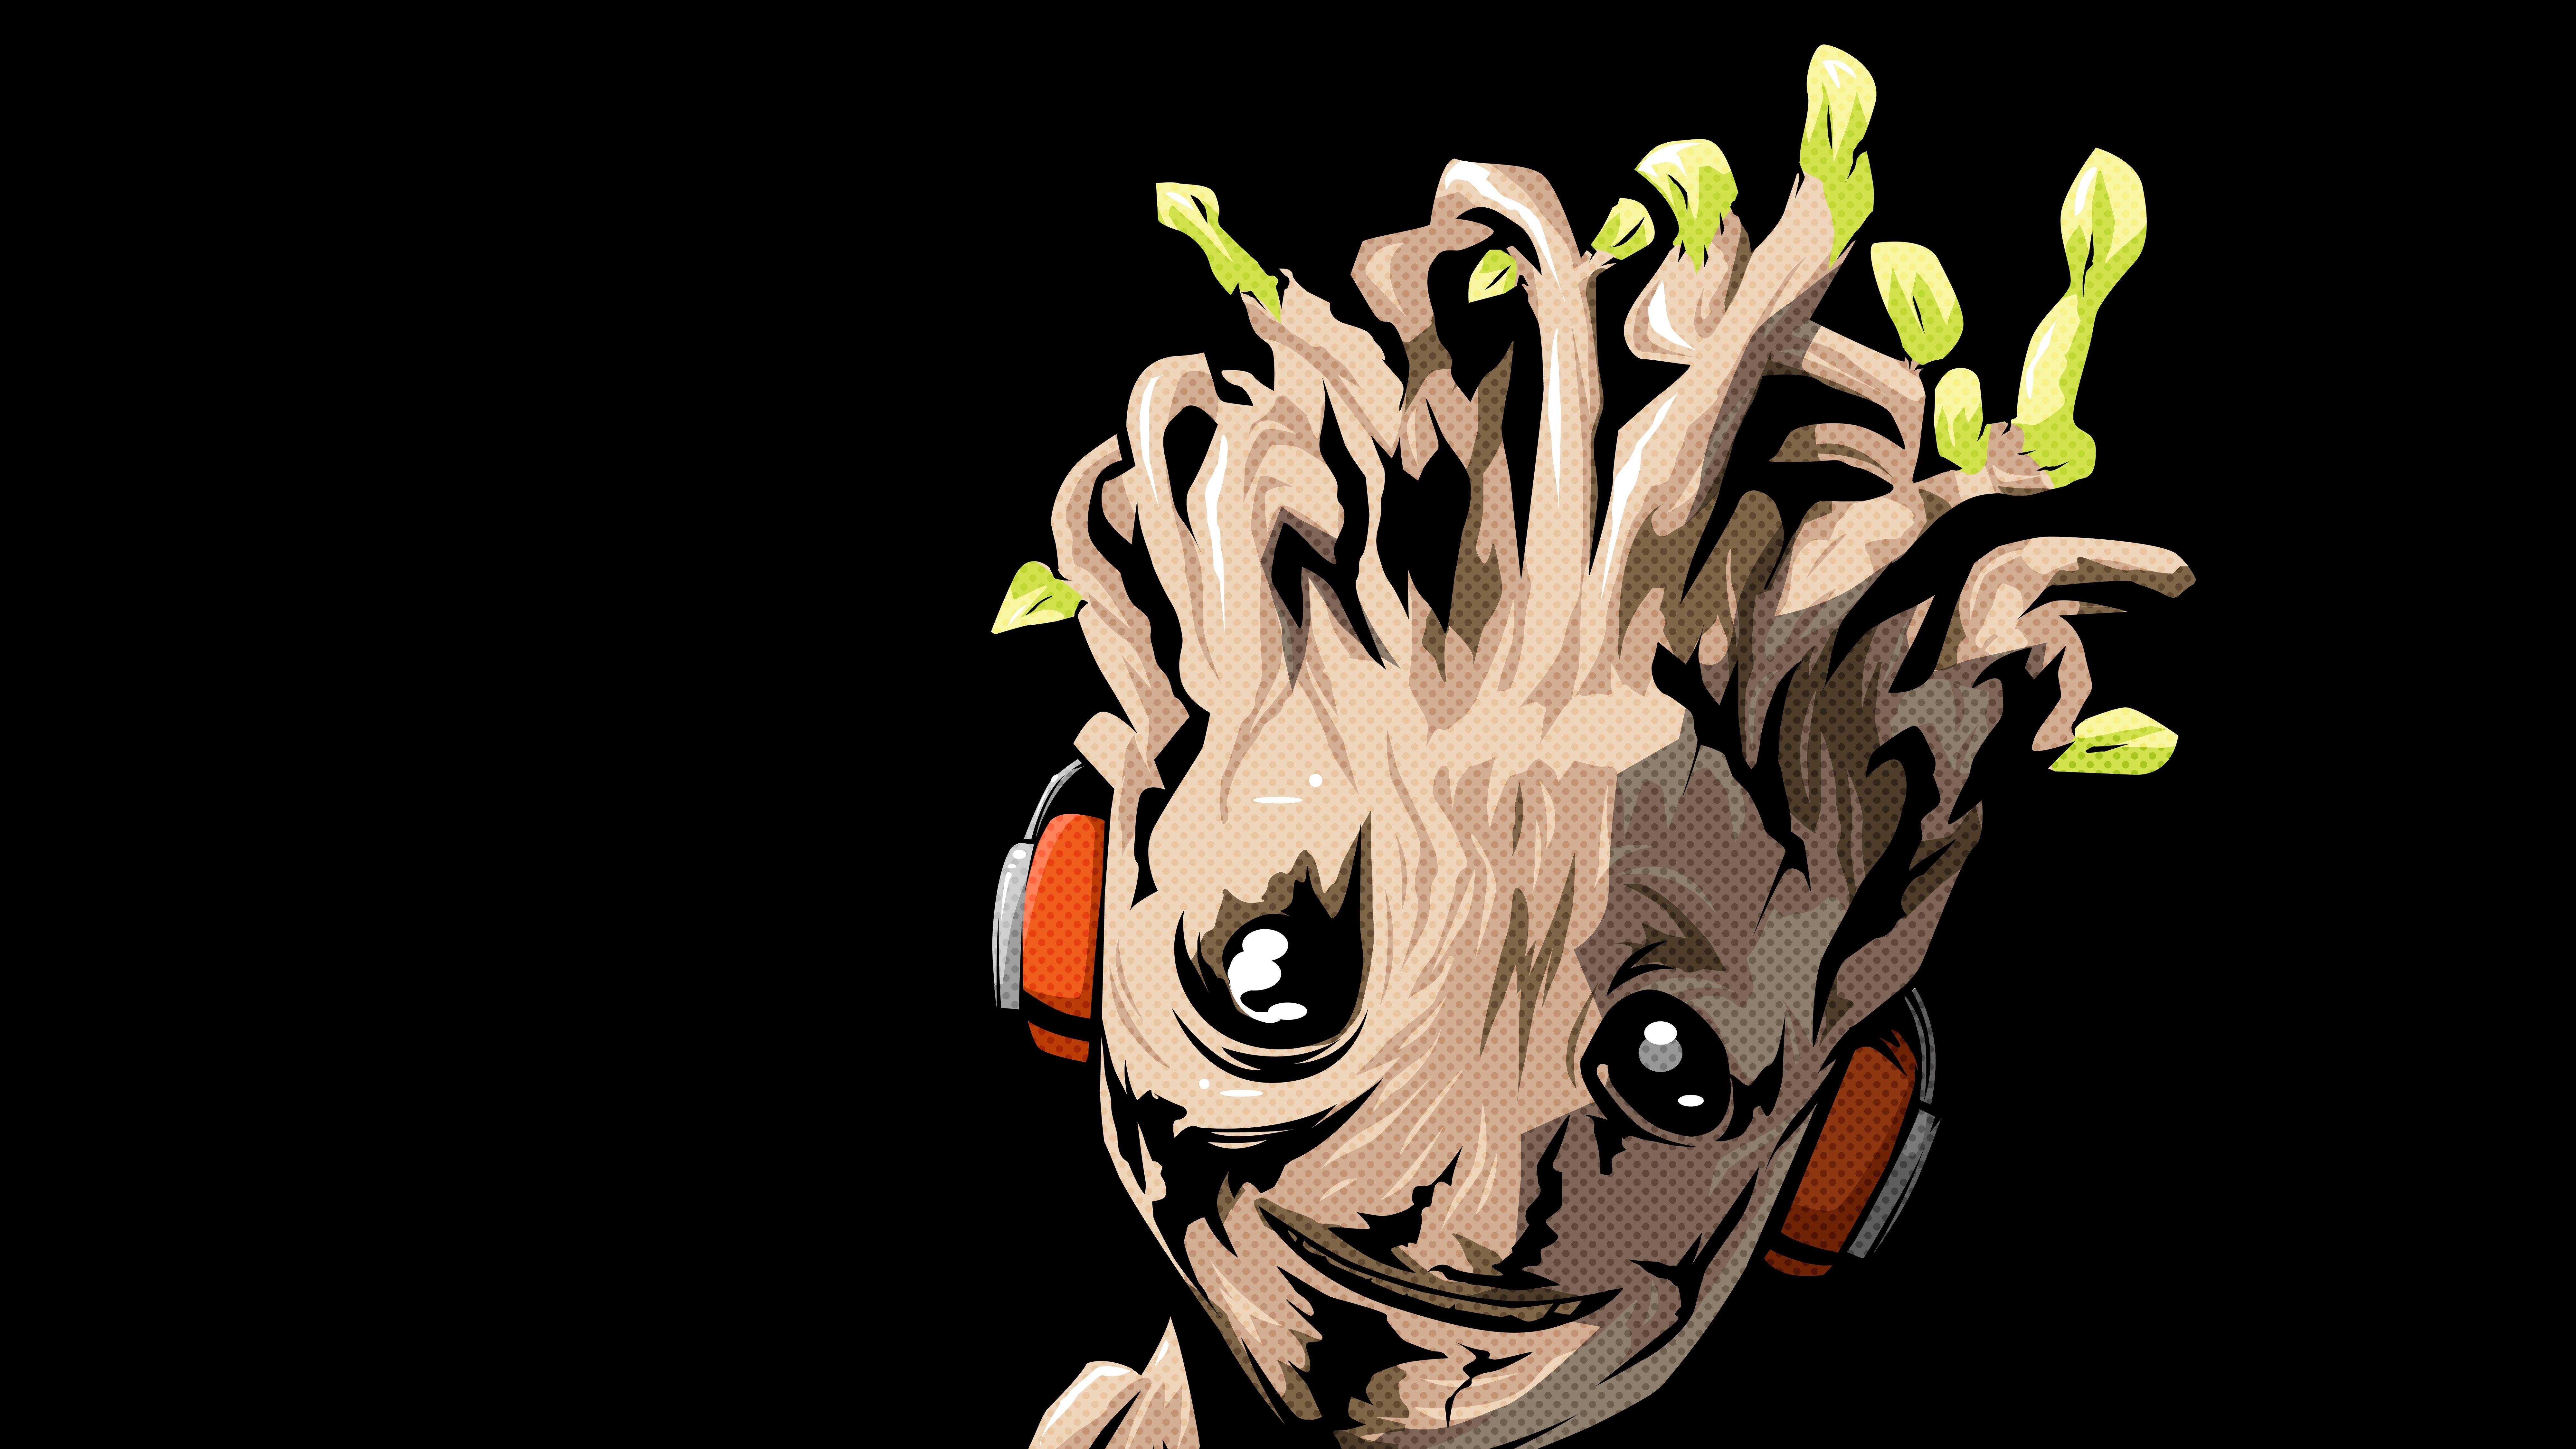 77 Groot HD Wallpapers | Backgrounds - Wallpaper Abyss - Page 2